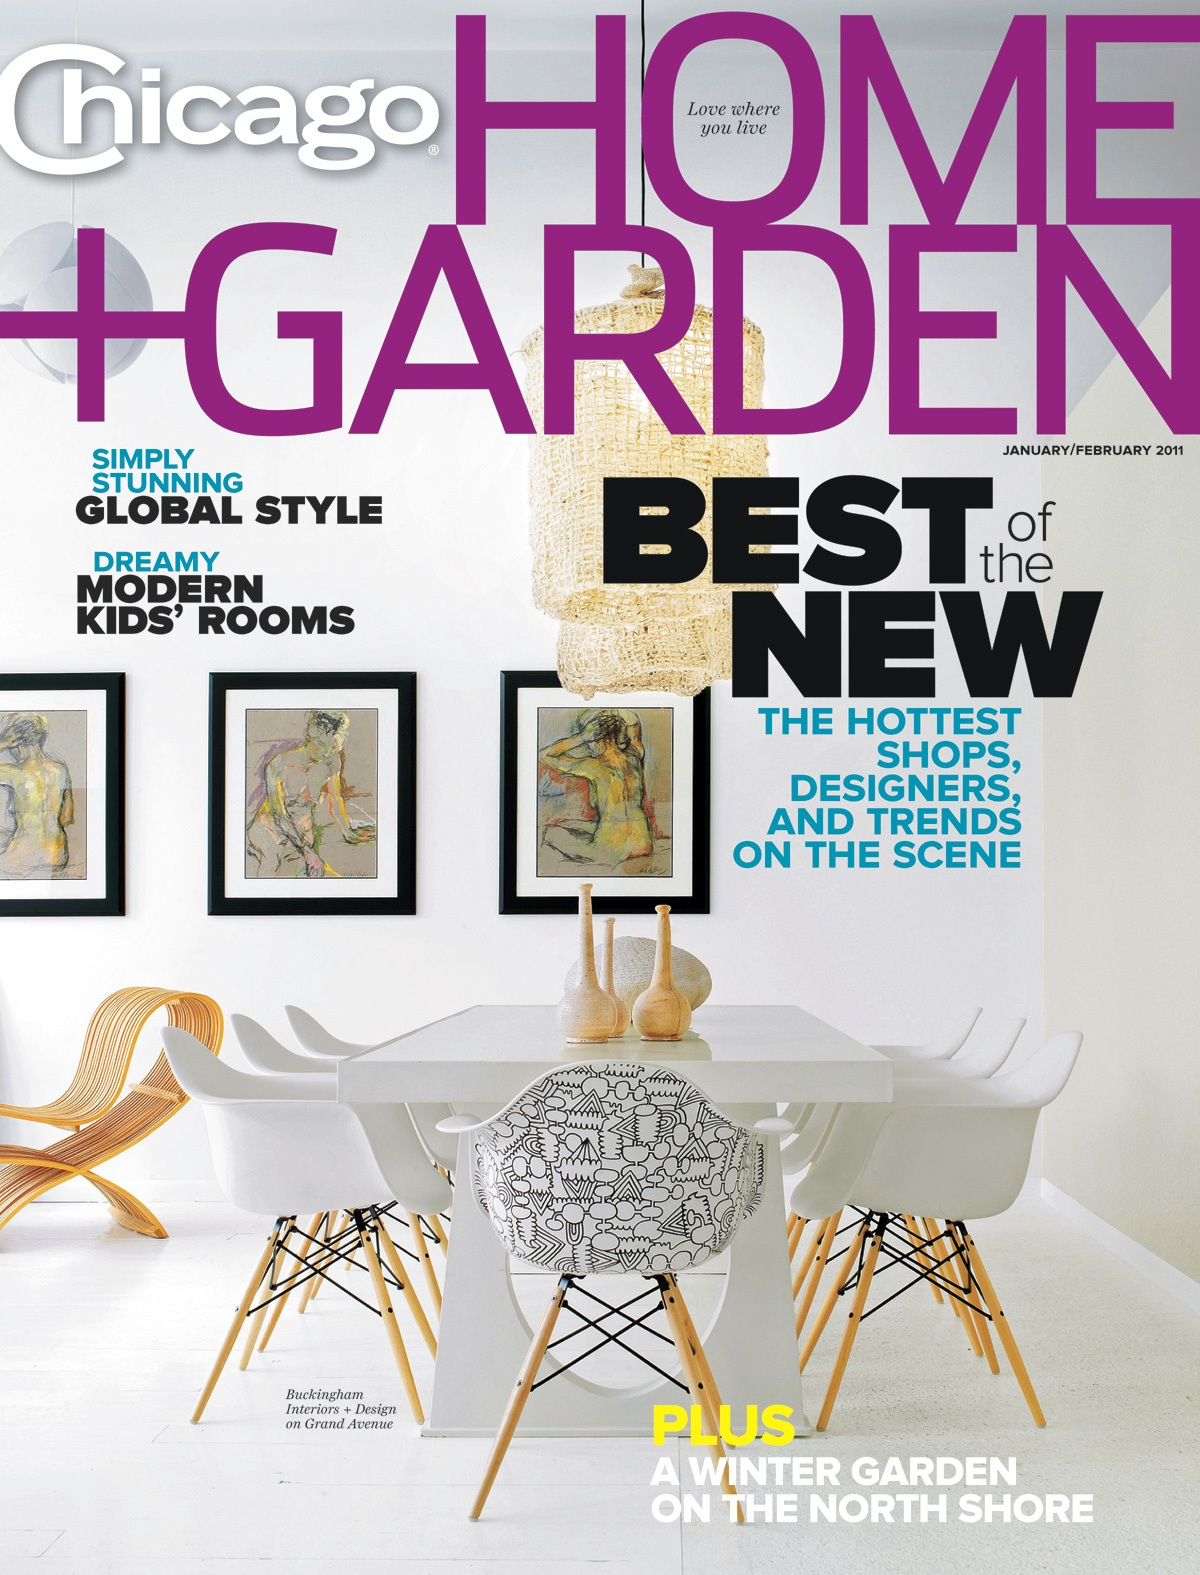 One of my pots (behind the three tall ones) has a moment of glory in the Buckingham Interiors + Design showroom on the January/February 2011 cover of Chicago Home + Garden magazine.